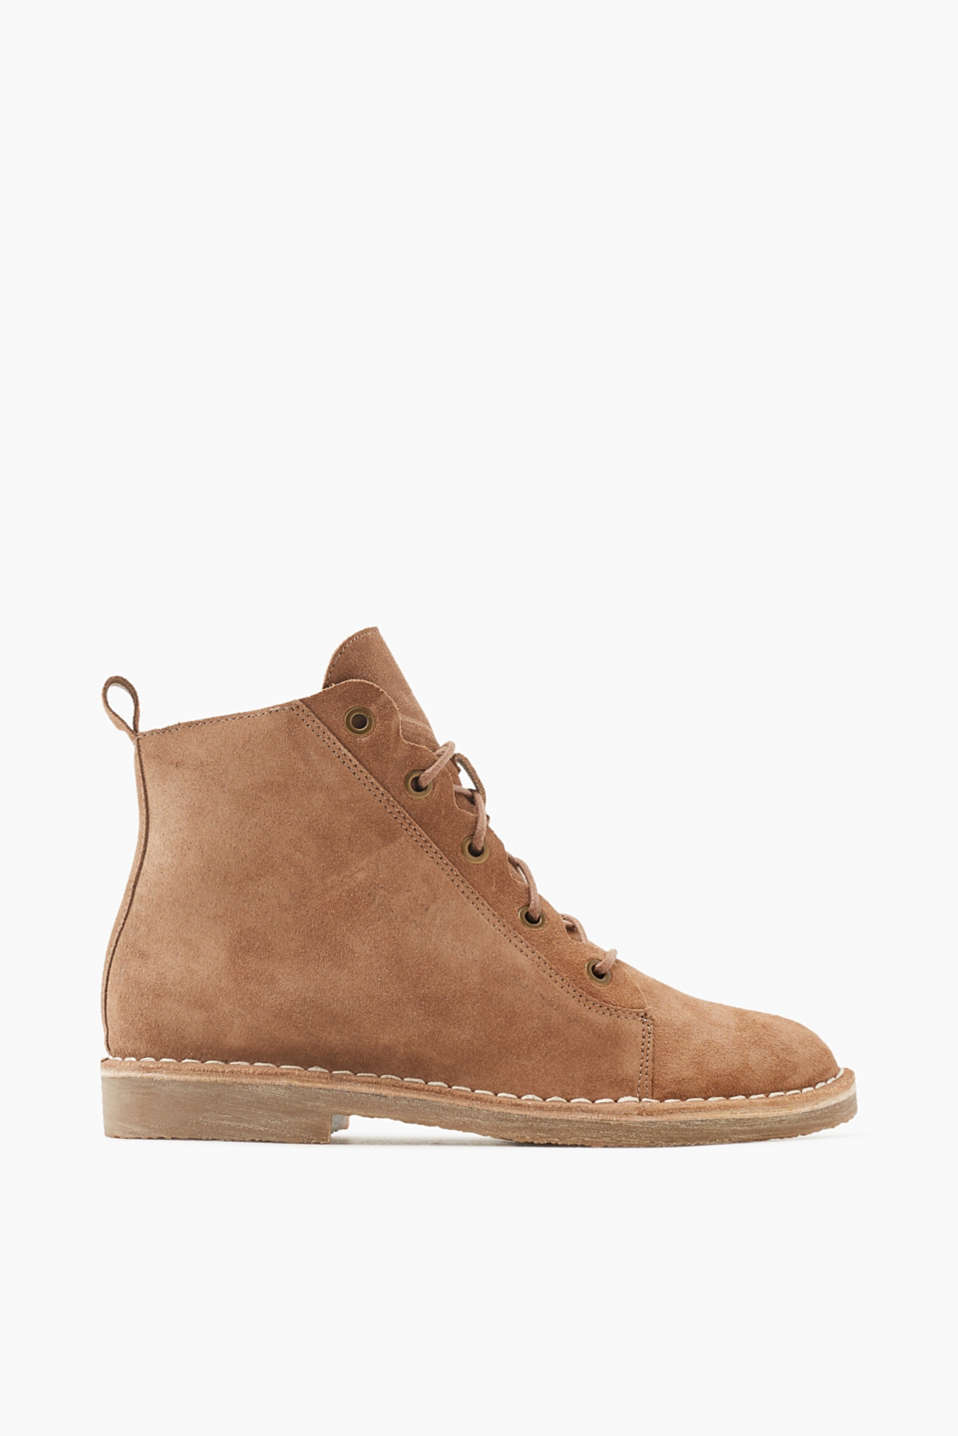 These lace-up suede boots with warm lining and a crepe sole are perfect for sporty looks!